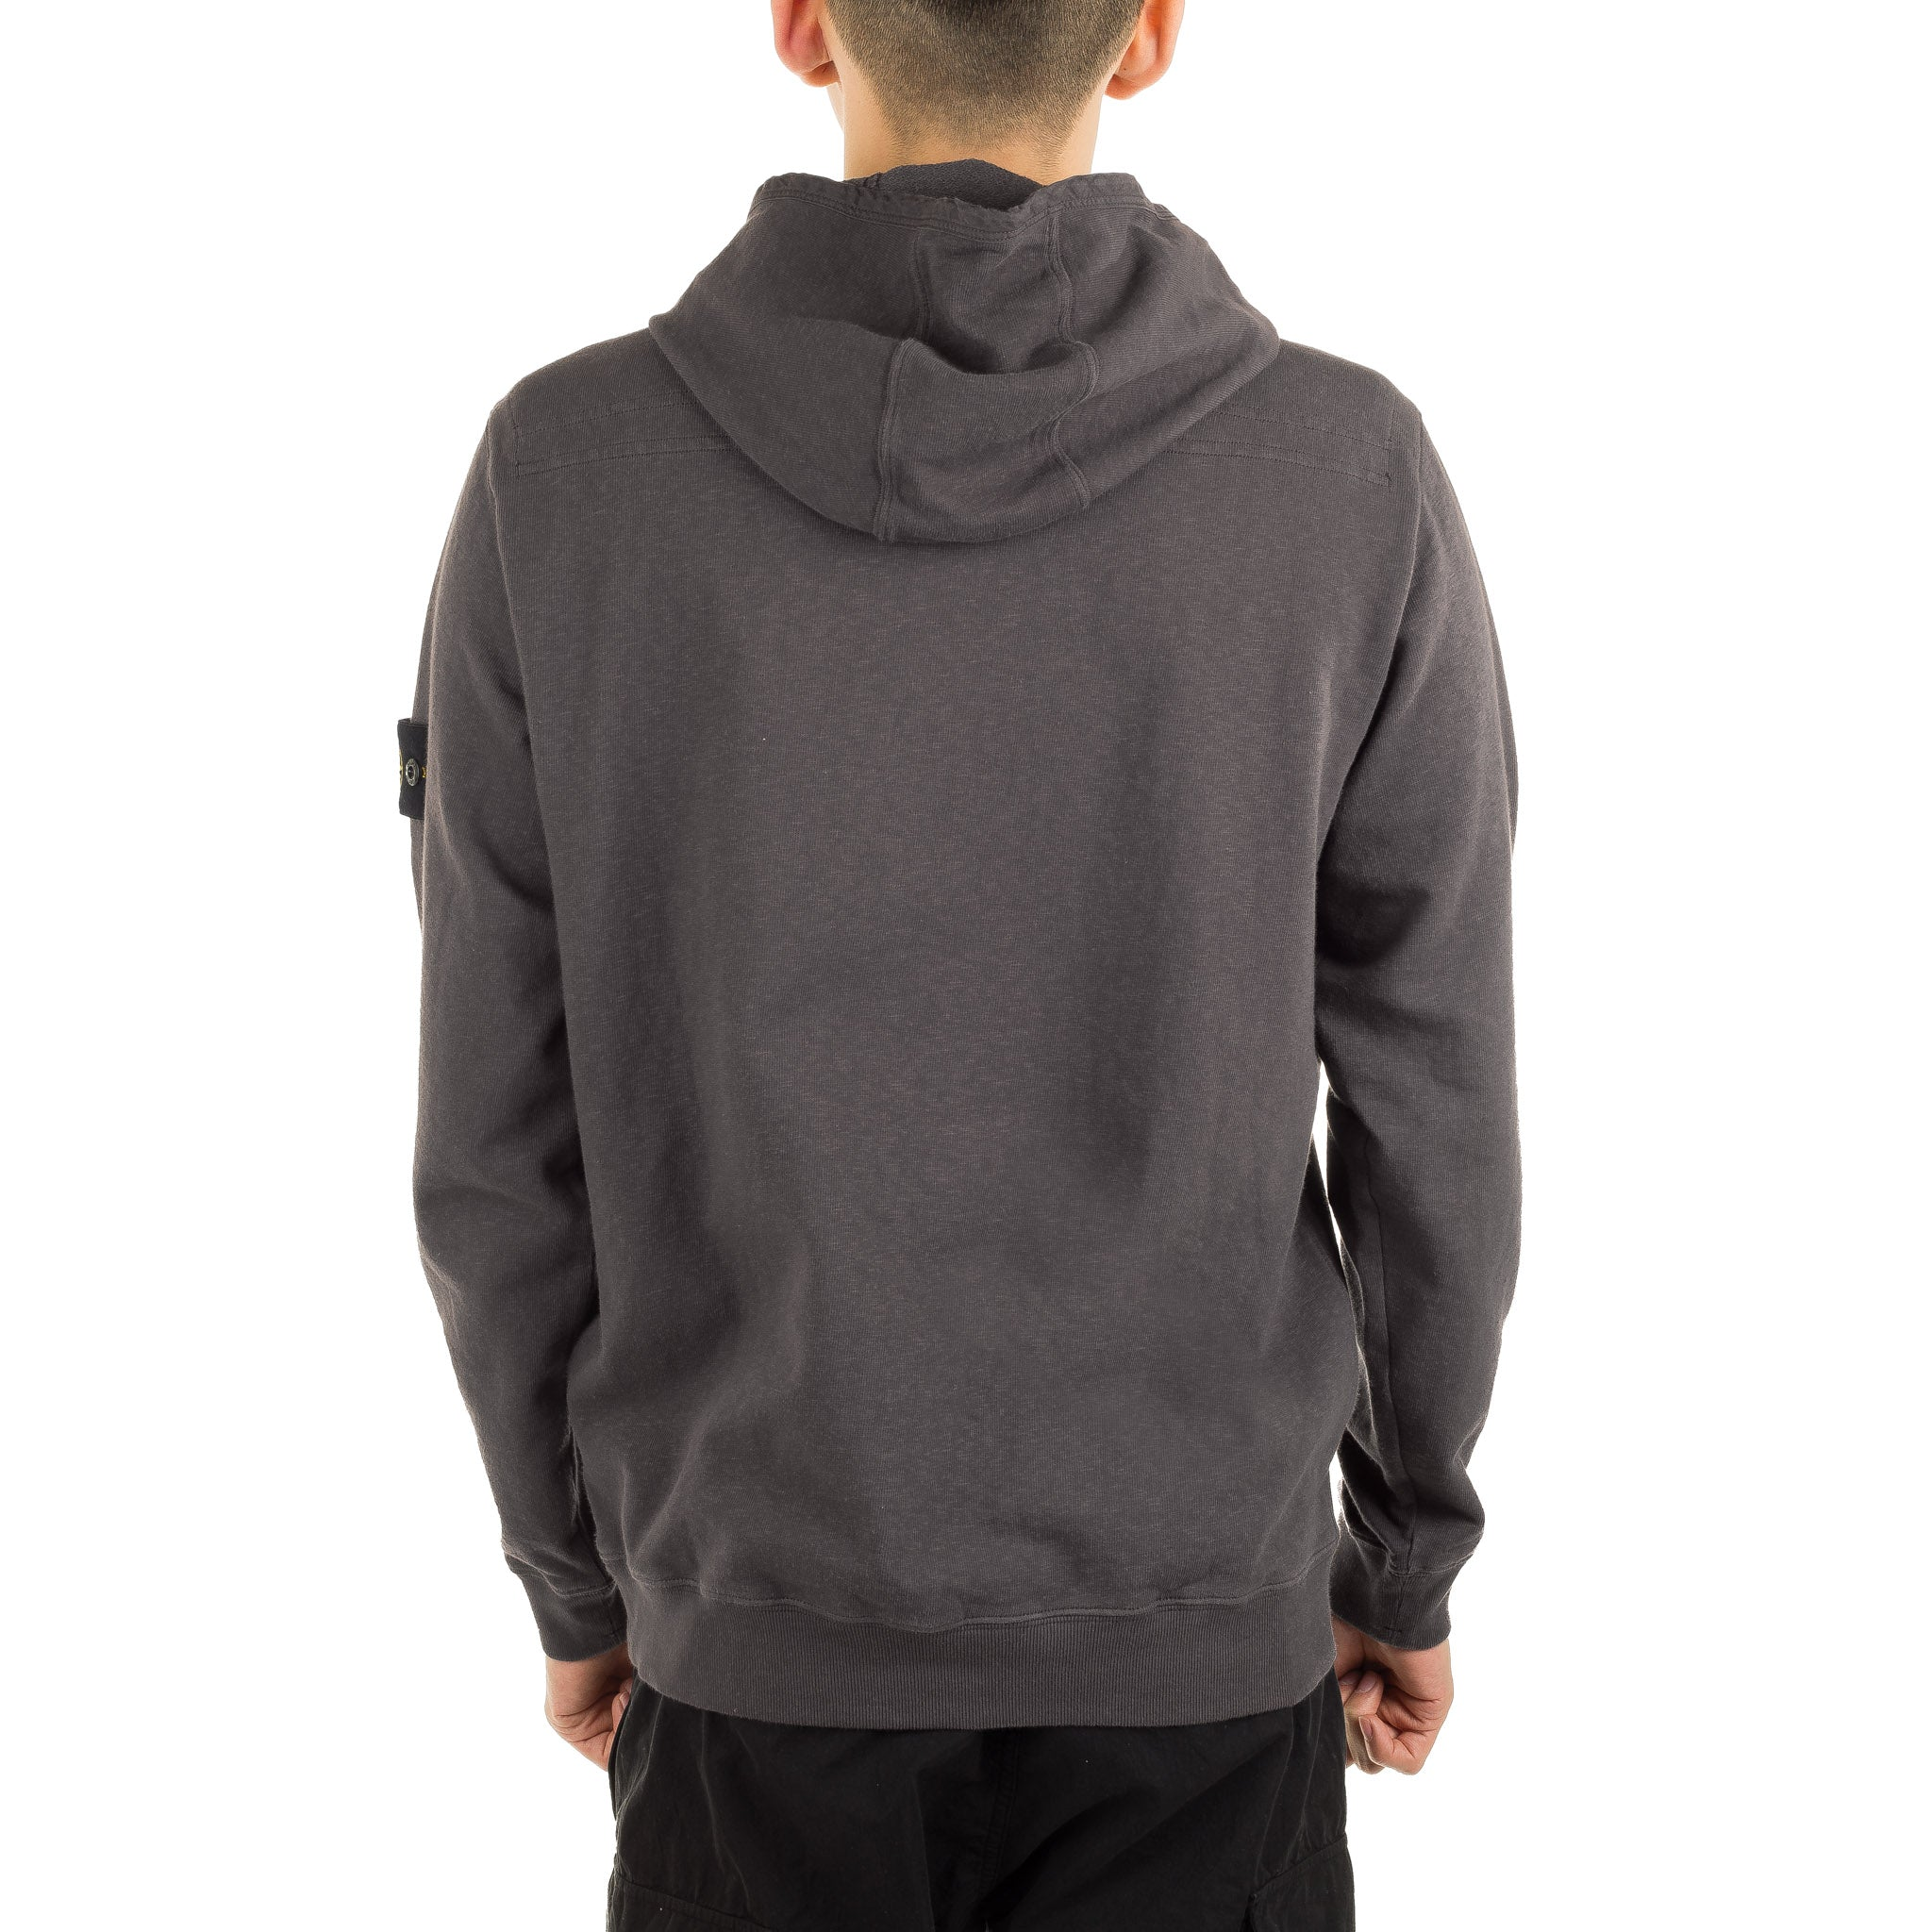 Garment Dyed Old Effect Hoodie 701565660 V0063 Charcoal